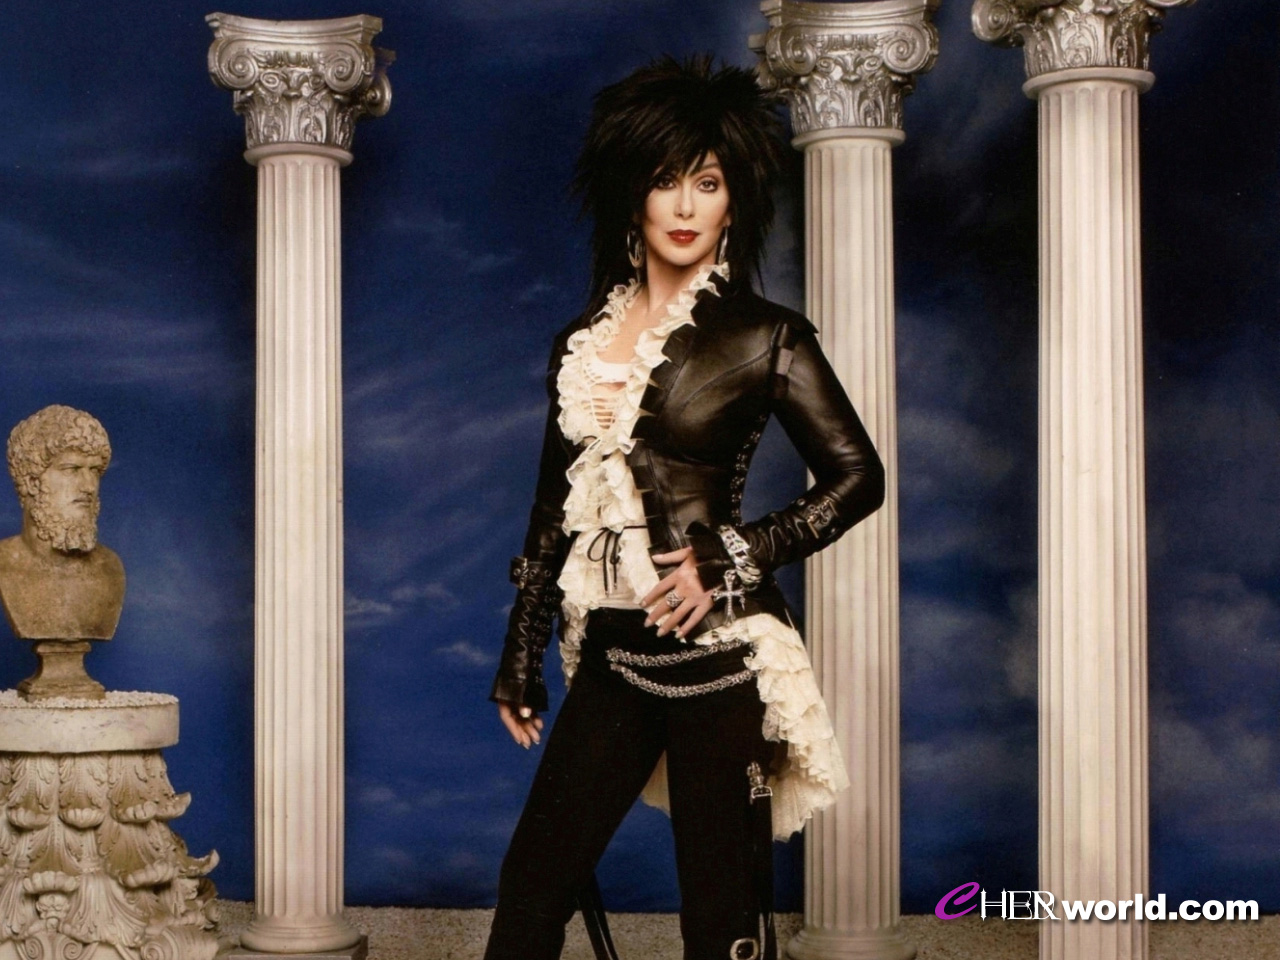 Wallpaper Quotes Love Hurts Cher Wallpapers Desktop Background And Themes